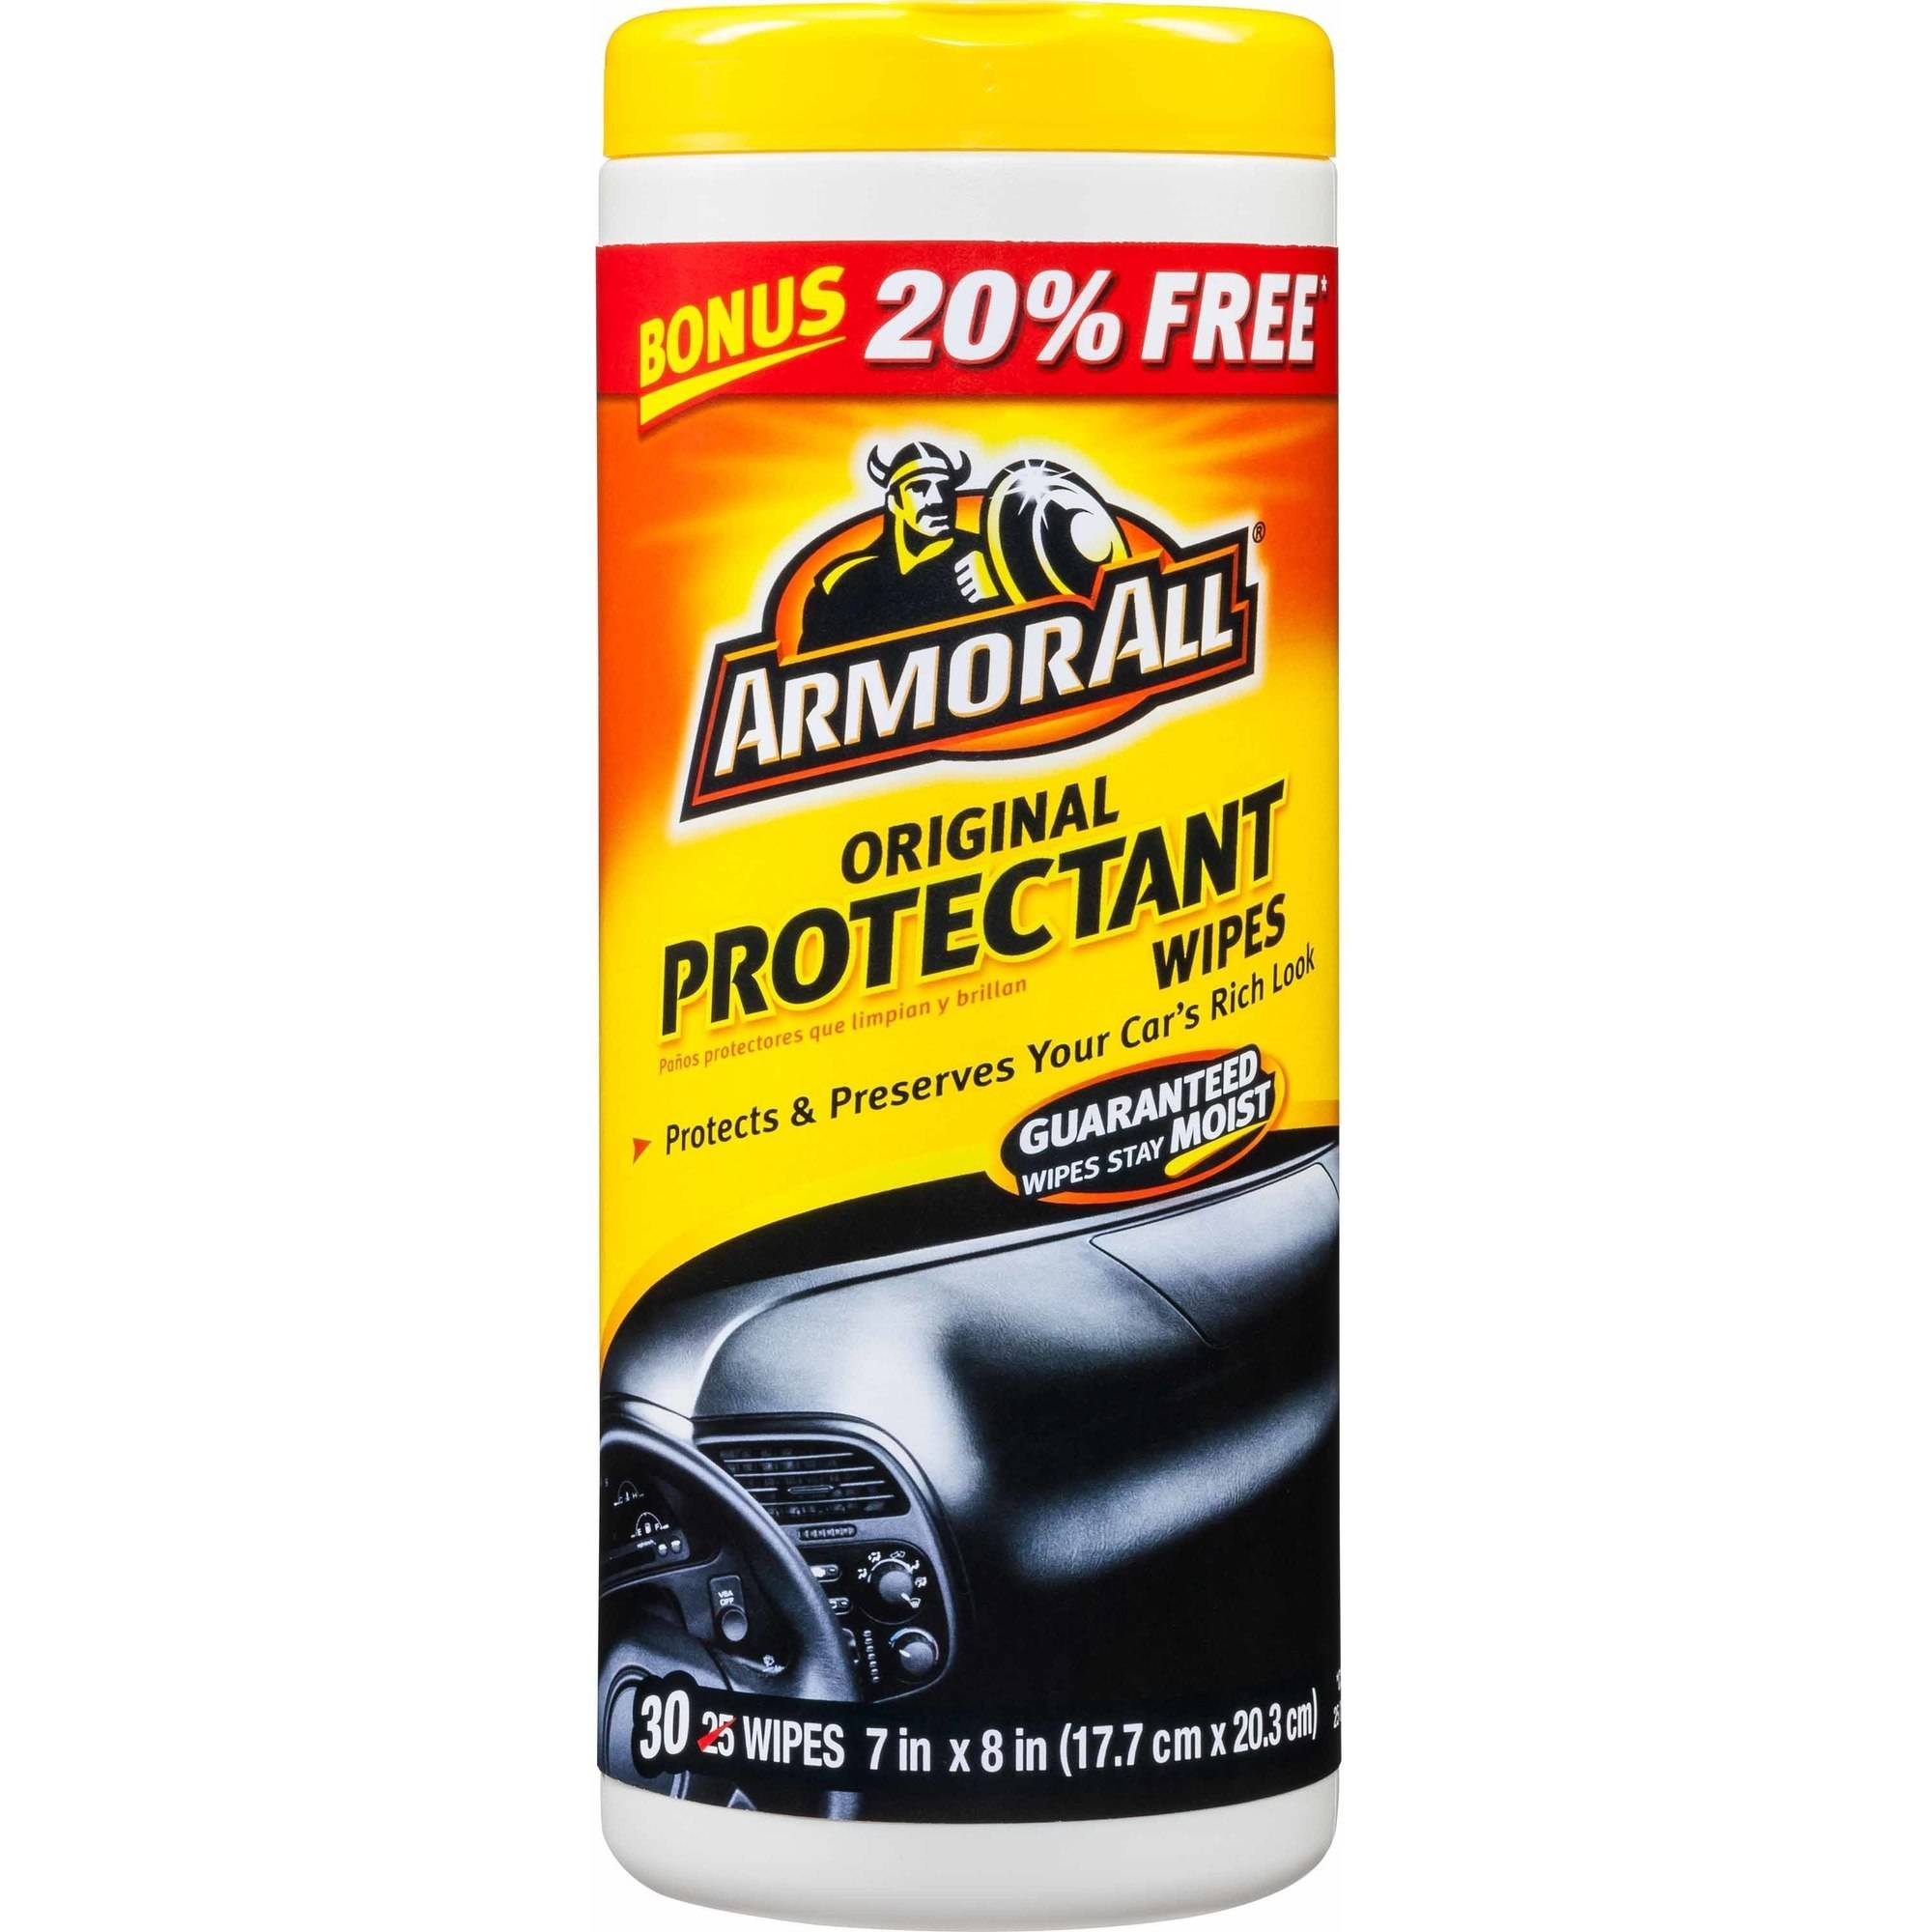 Armor All Original Protectant Wipes, 30 ct, Car Interior Protectant